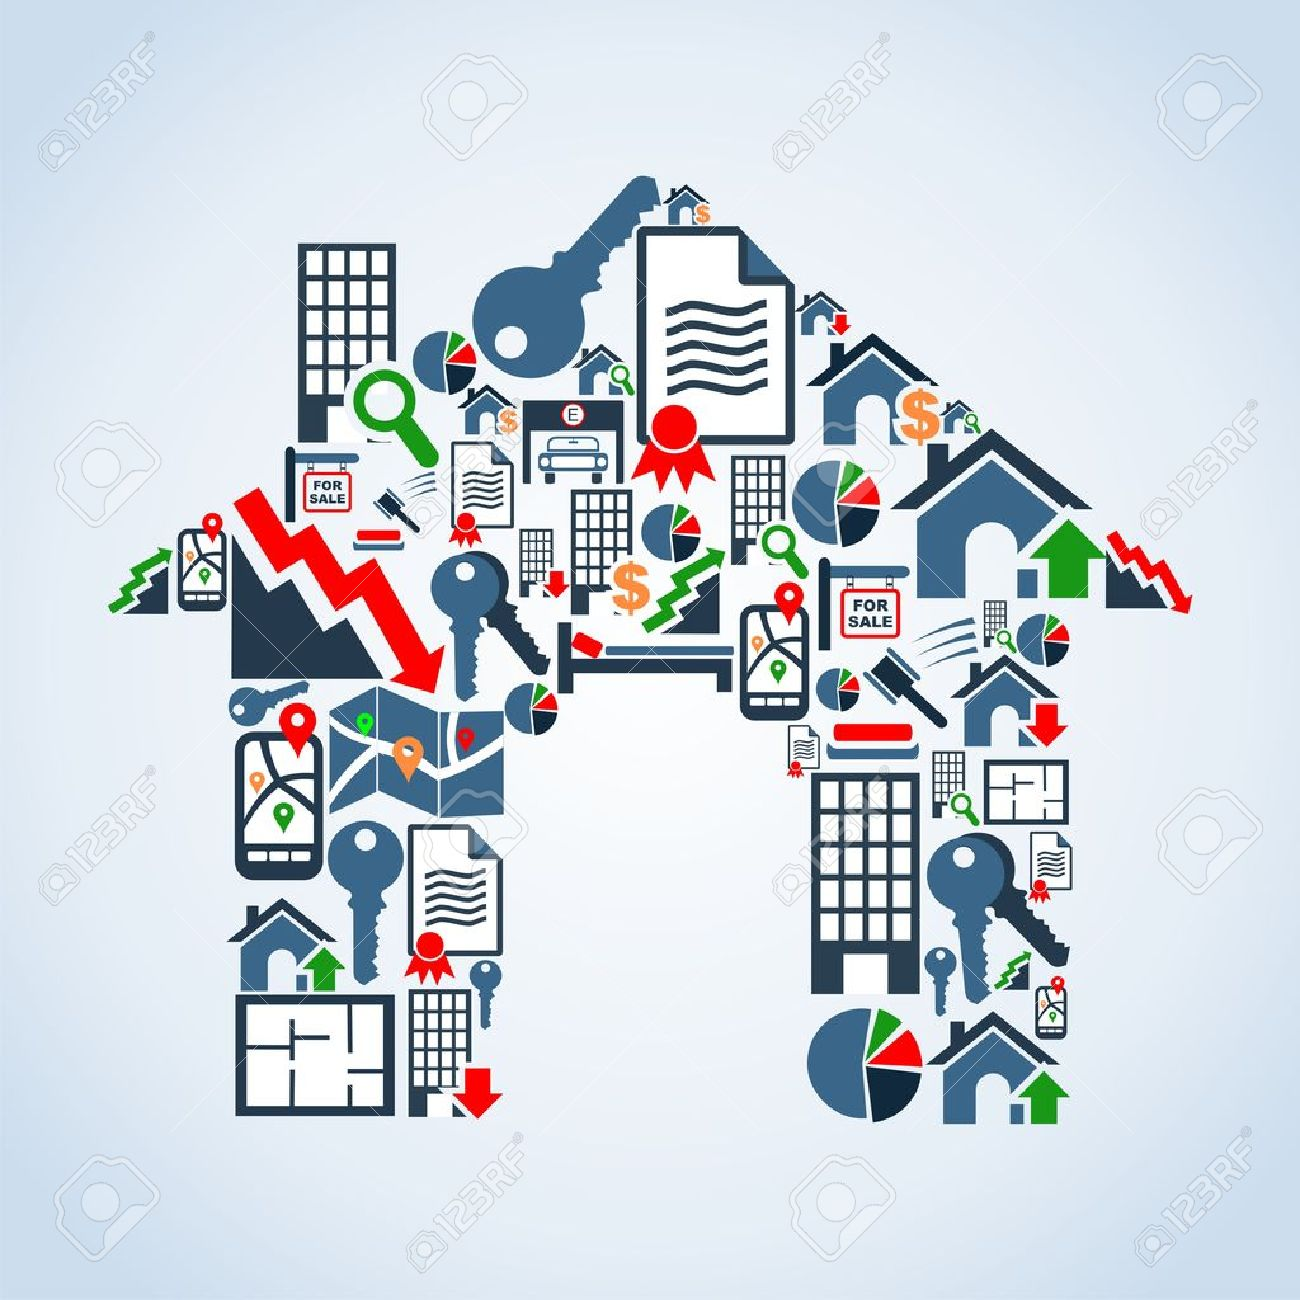 Real estate icon set in house silhouette background illustration file layered for easy manipulation and custom coloring Stock Vector - 13533867